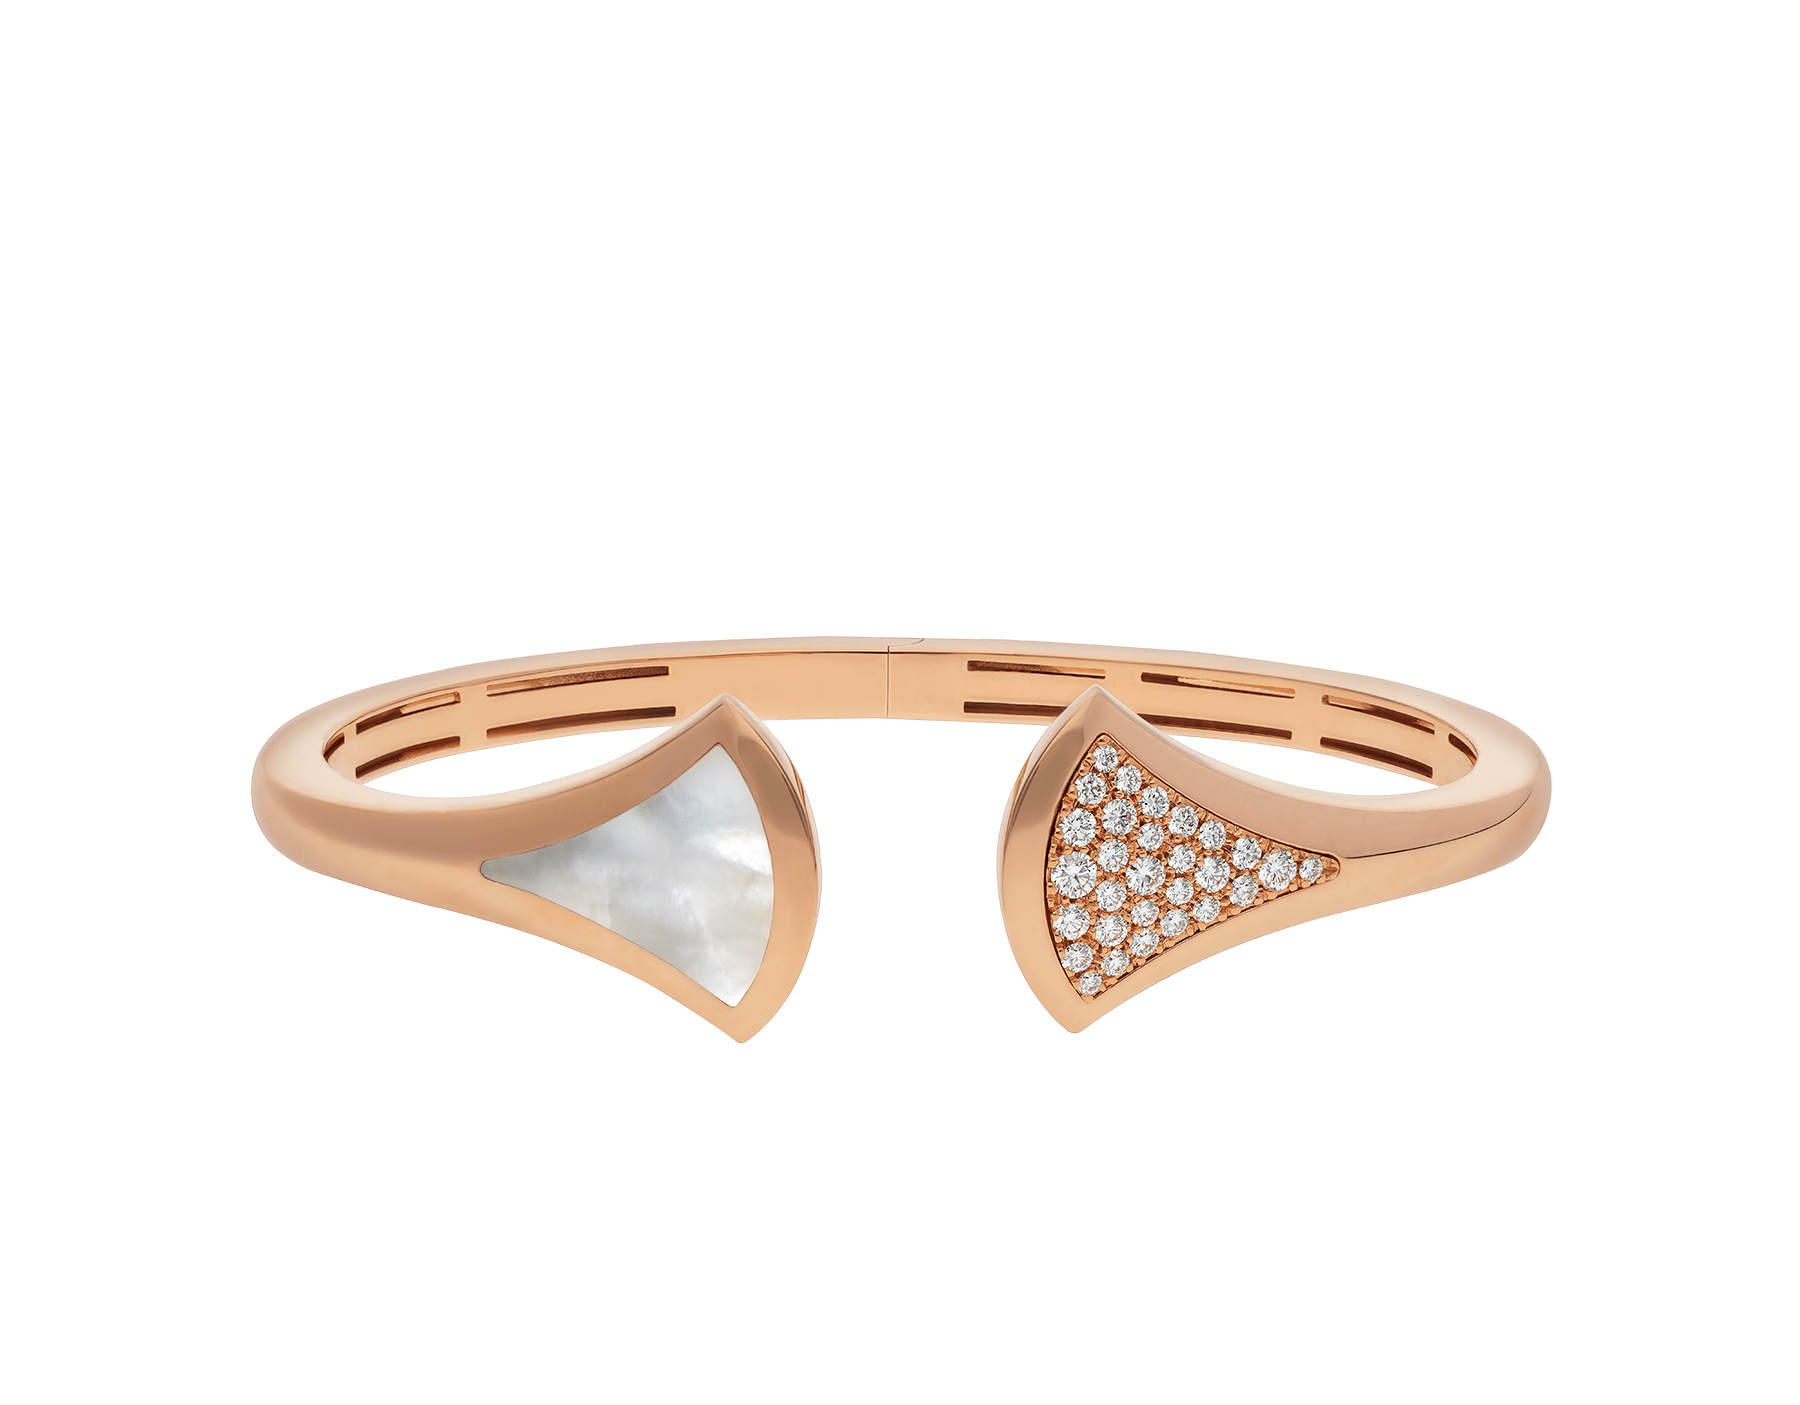 DIVAS' DREAM 18 kt rose gold cuff bracelet, set with mother-of-pearl and pavé diamonds. BR857370 image 2